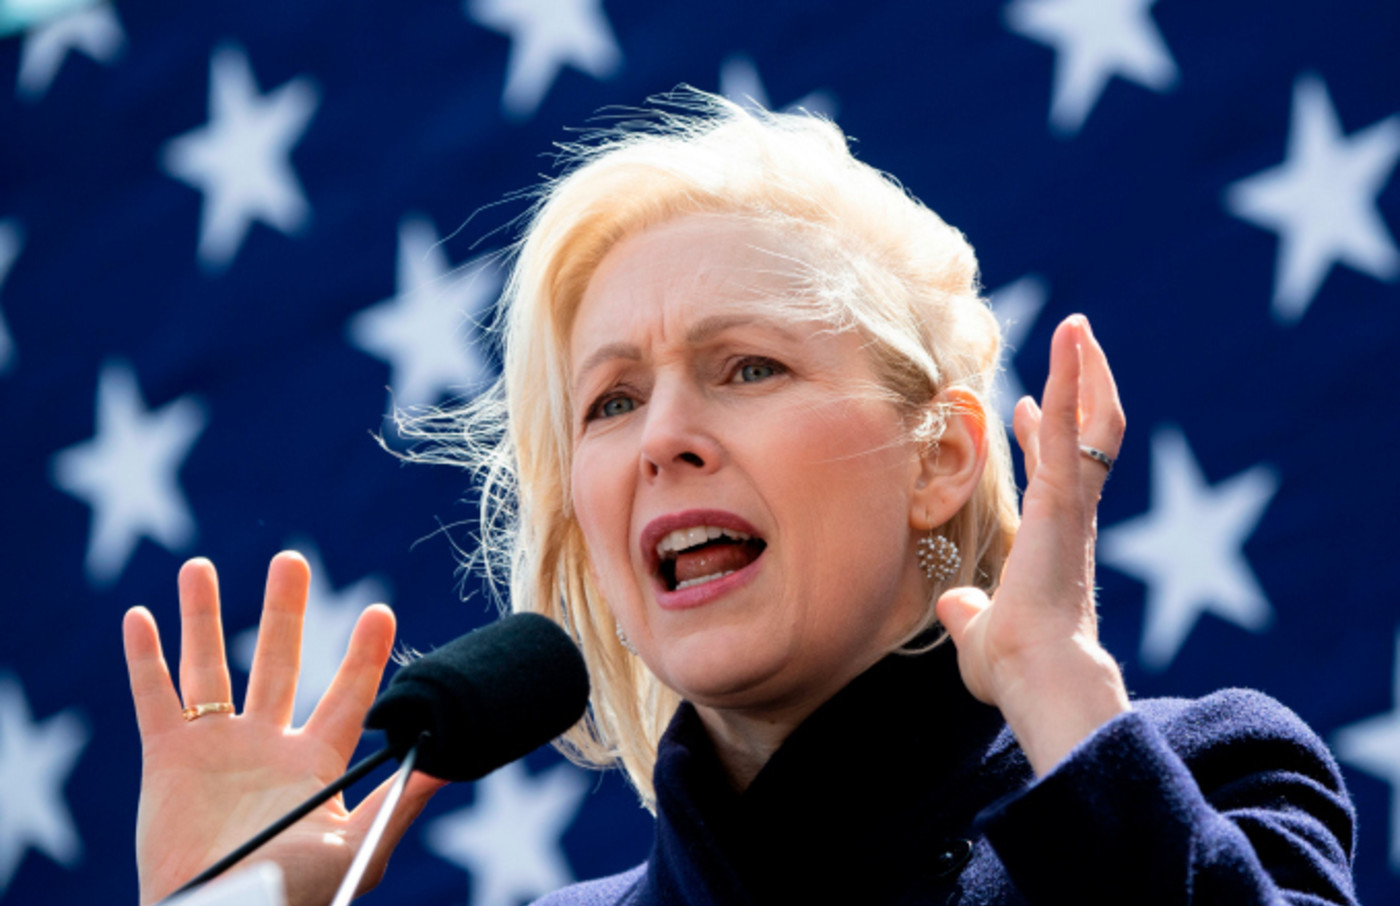 Kristen Gillibrand holds a speech during the official kick-off rally